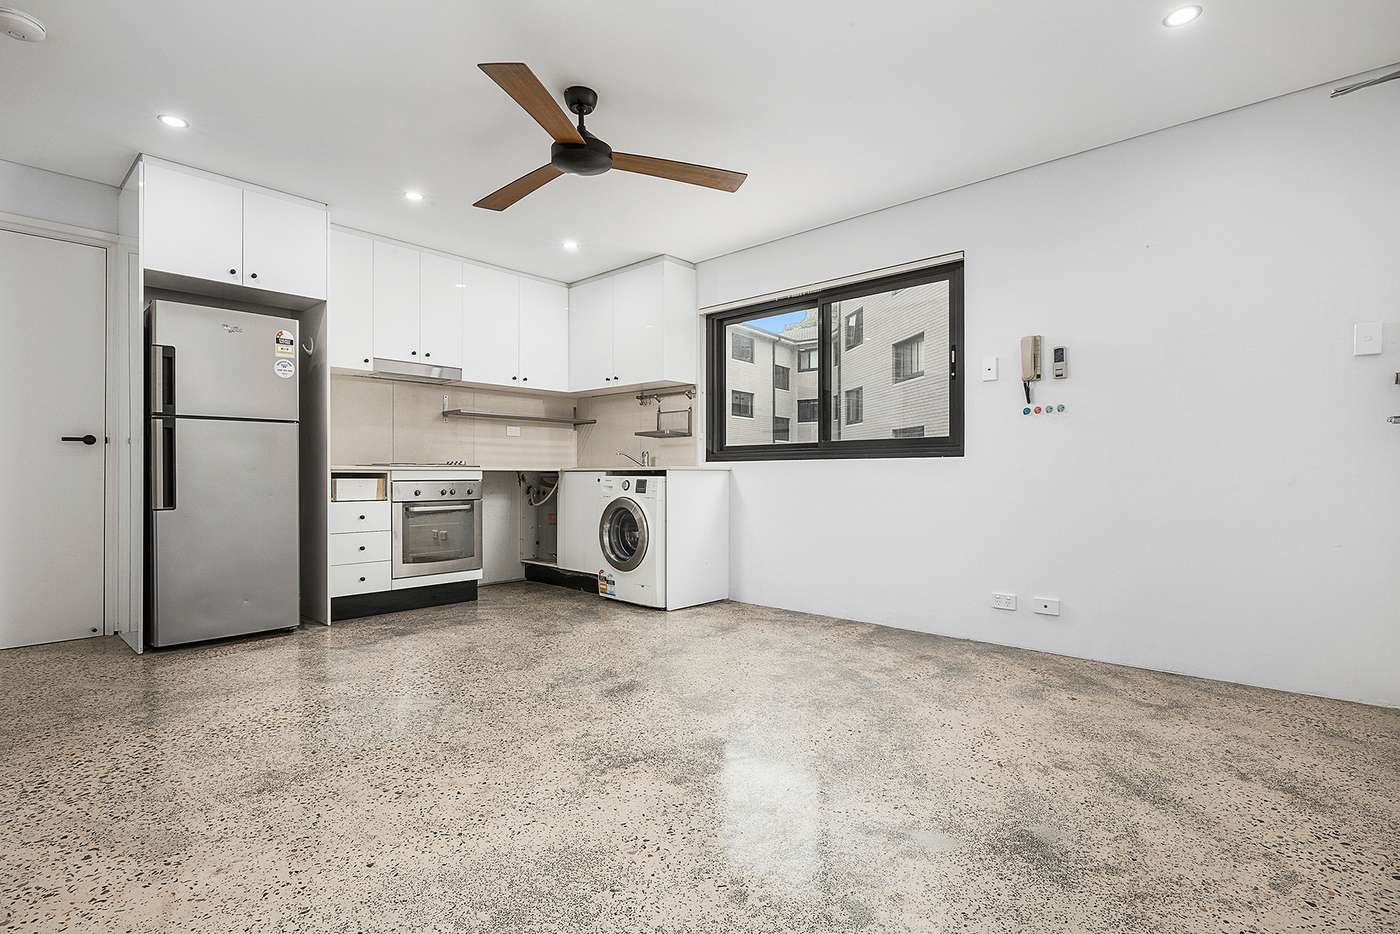 Main view of Homely apartment listing, 34/1a Leeton Avenue, Coogee NSW 2034